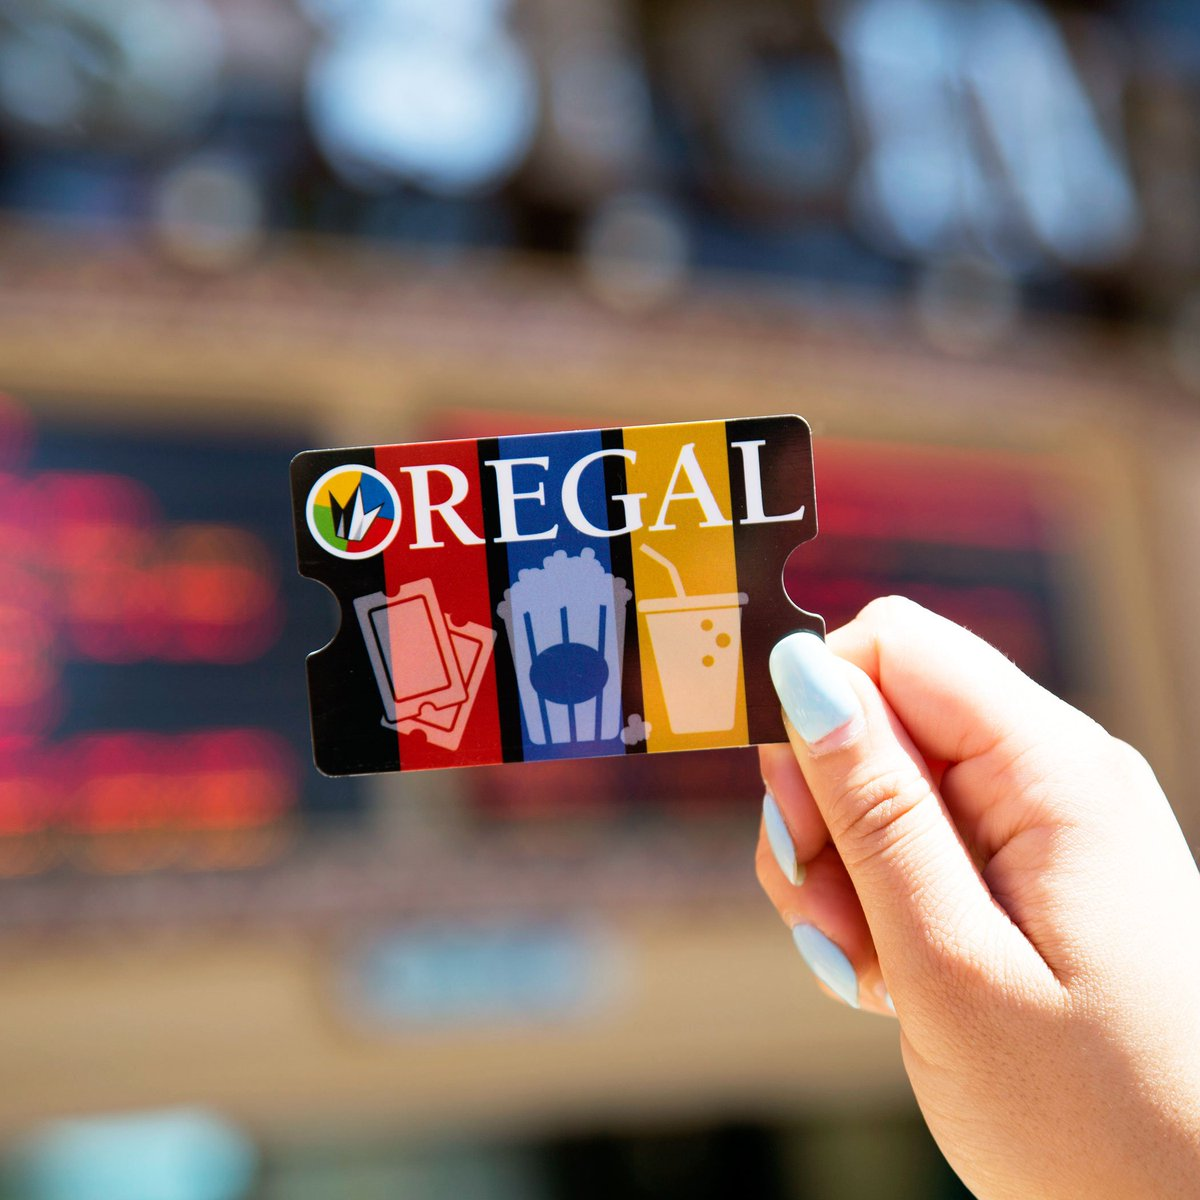 Want free movies this summer? We're giving away a $100 Regal giftcard to 5 lucky Twitter fans! FOLLOW us & RT for a chance to win! Ends 7/31